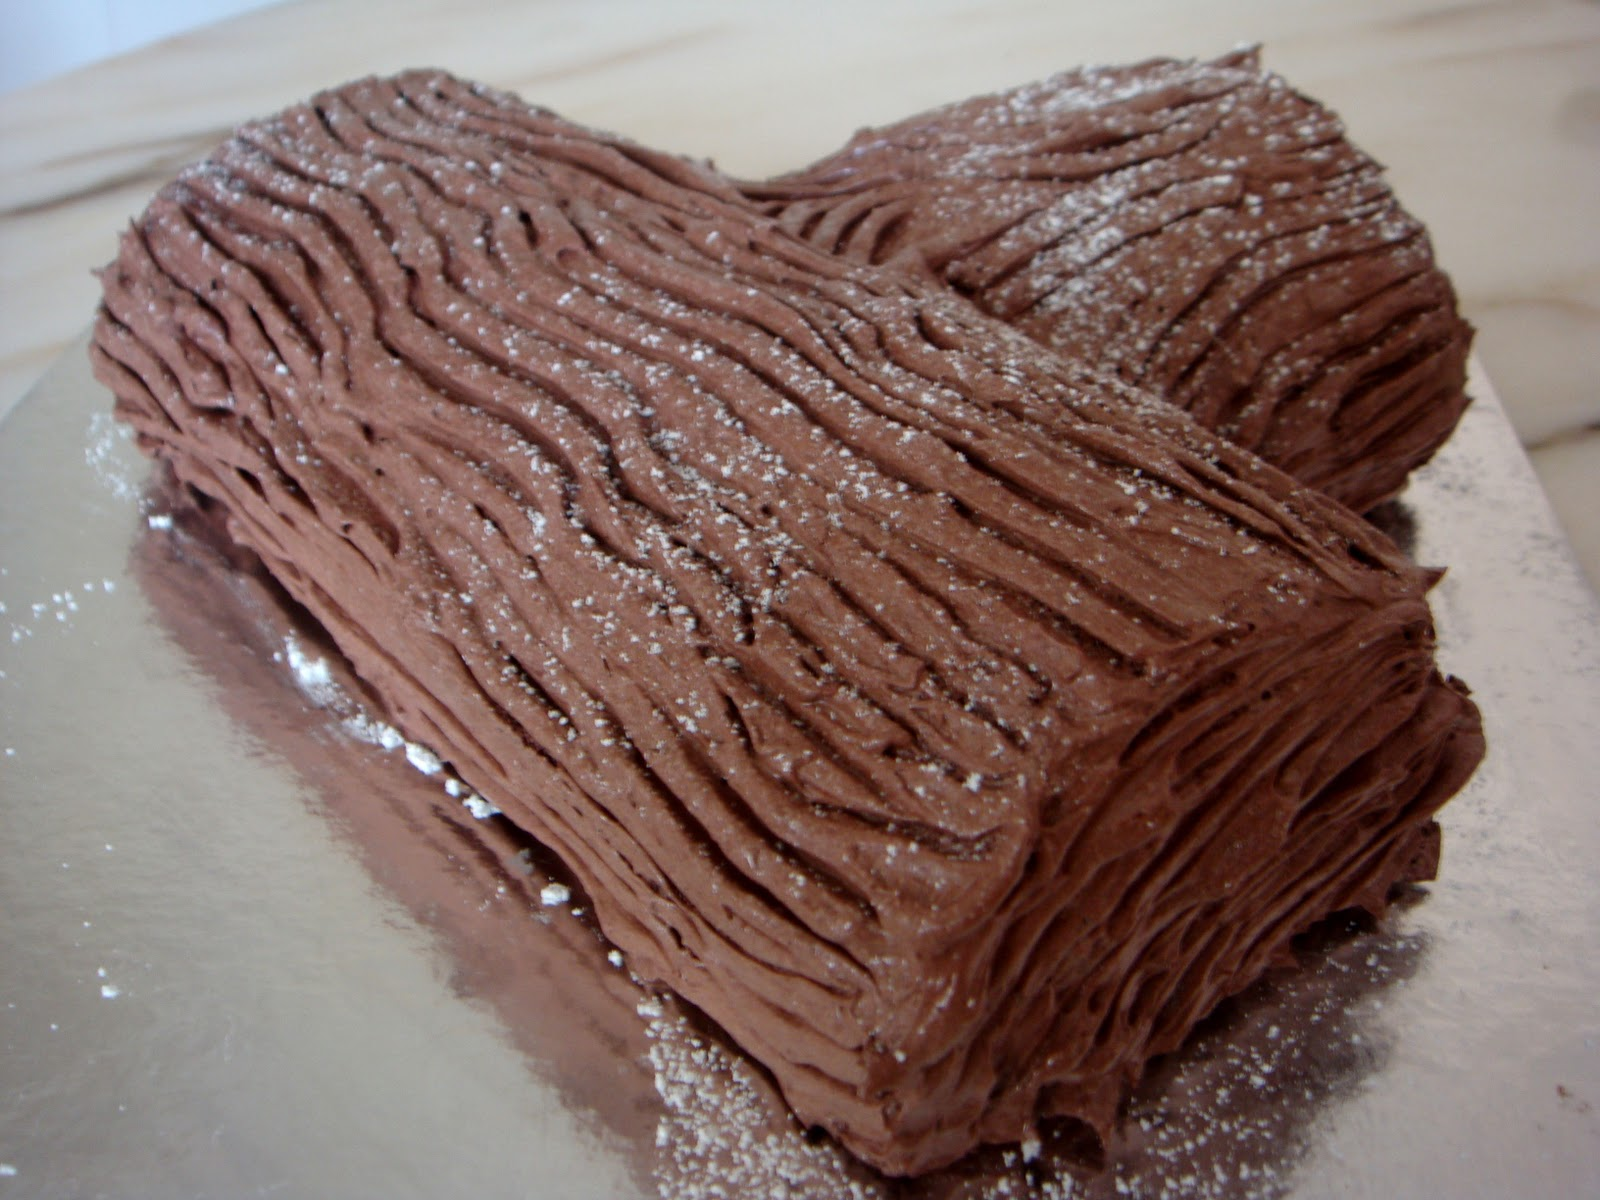 How to make a christmas yule log decoration - Bakertan S Christmas Goodies Chocolate Log Cake 1